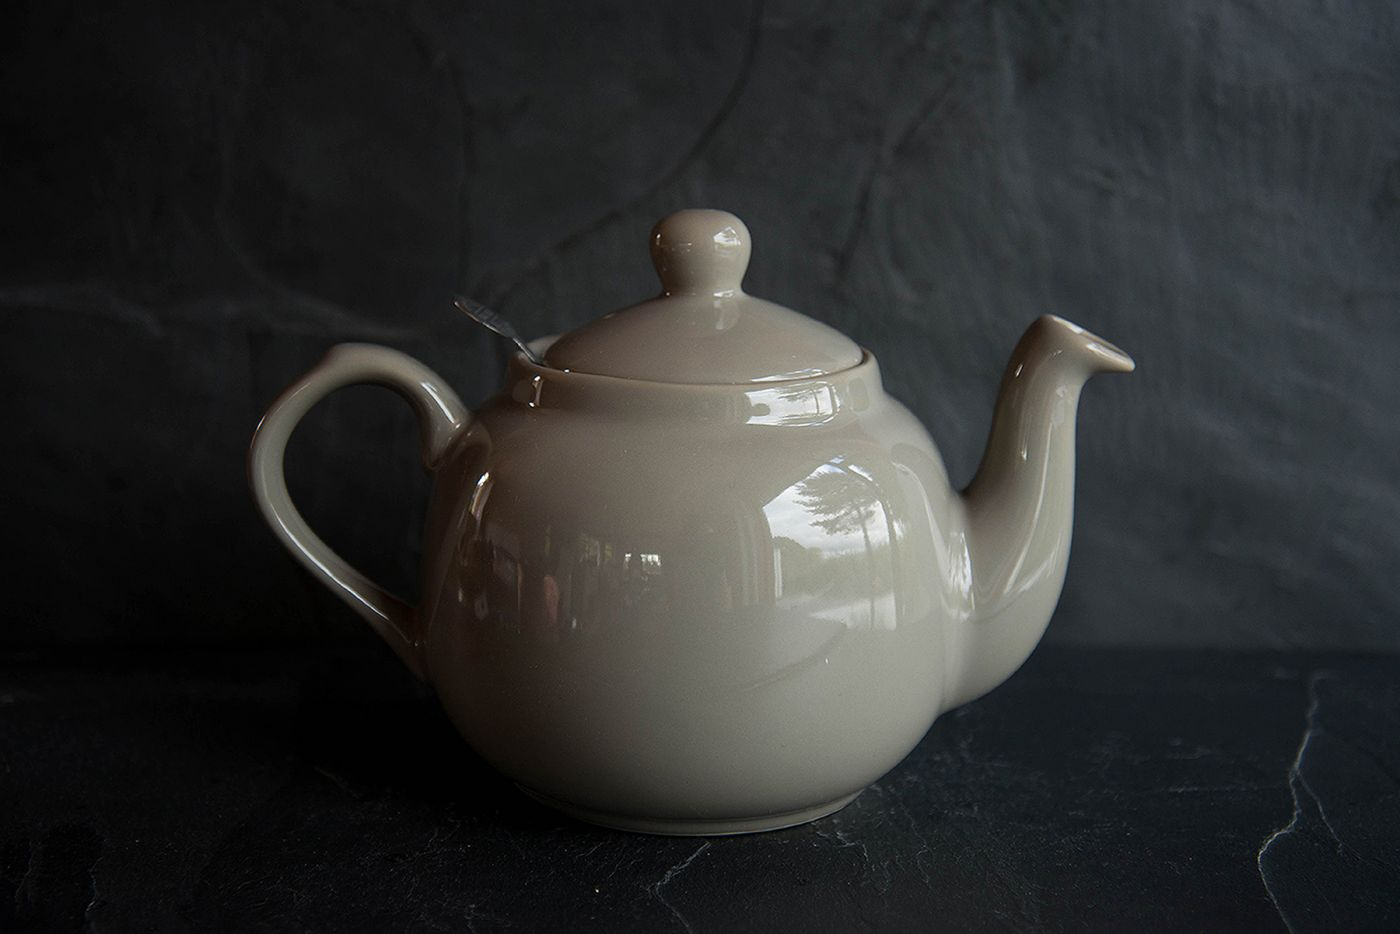 Farmhouse Grey 4 Cup Infuser Teapot